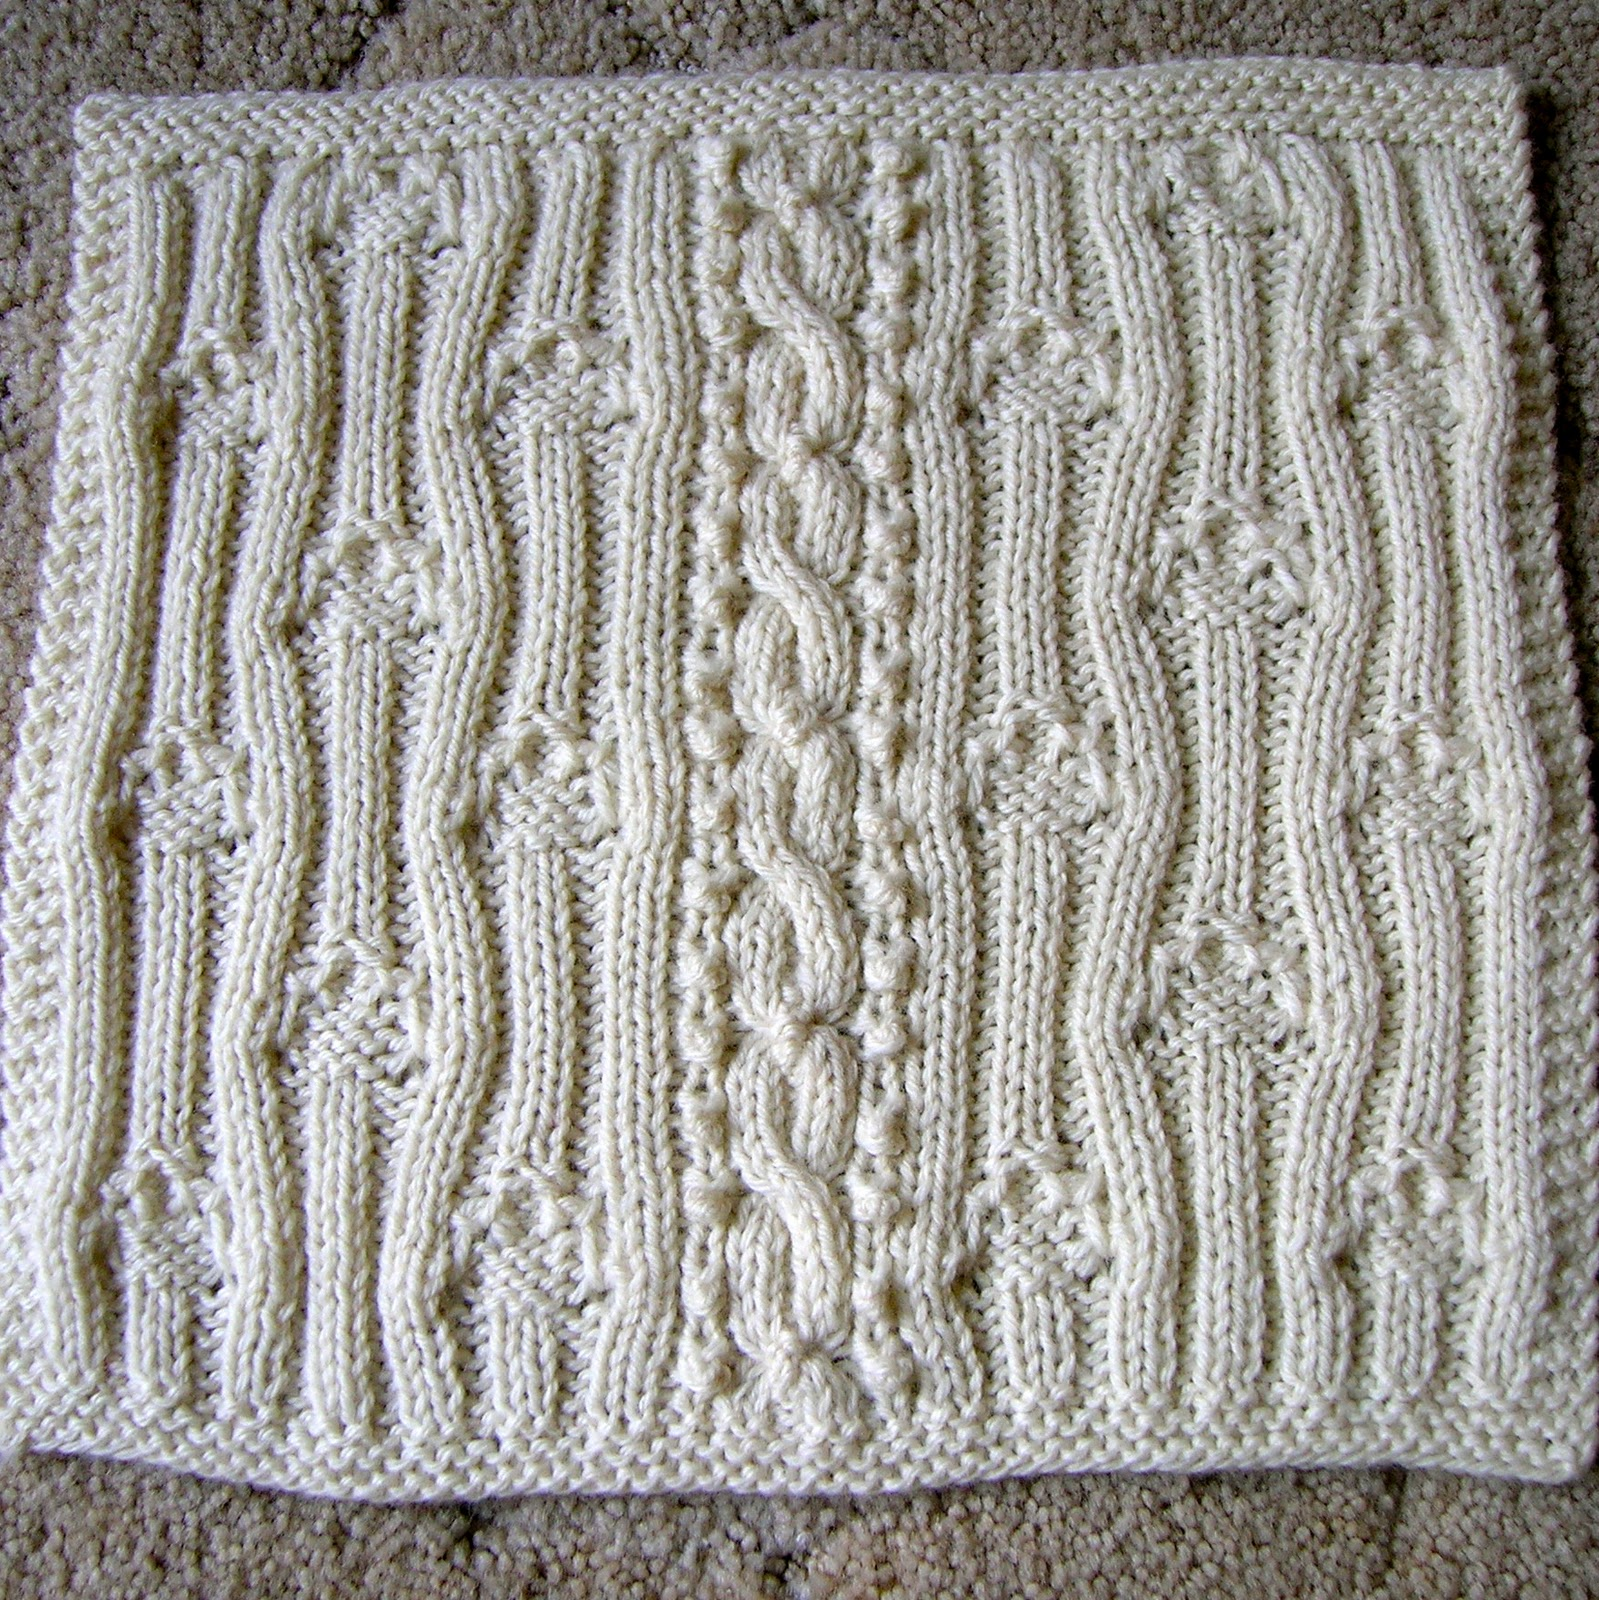 Unusual Knitting Techniques : Passion for knitting the great american afghan